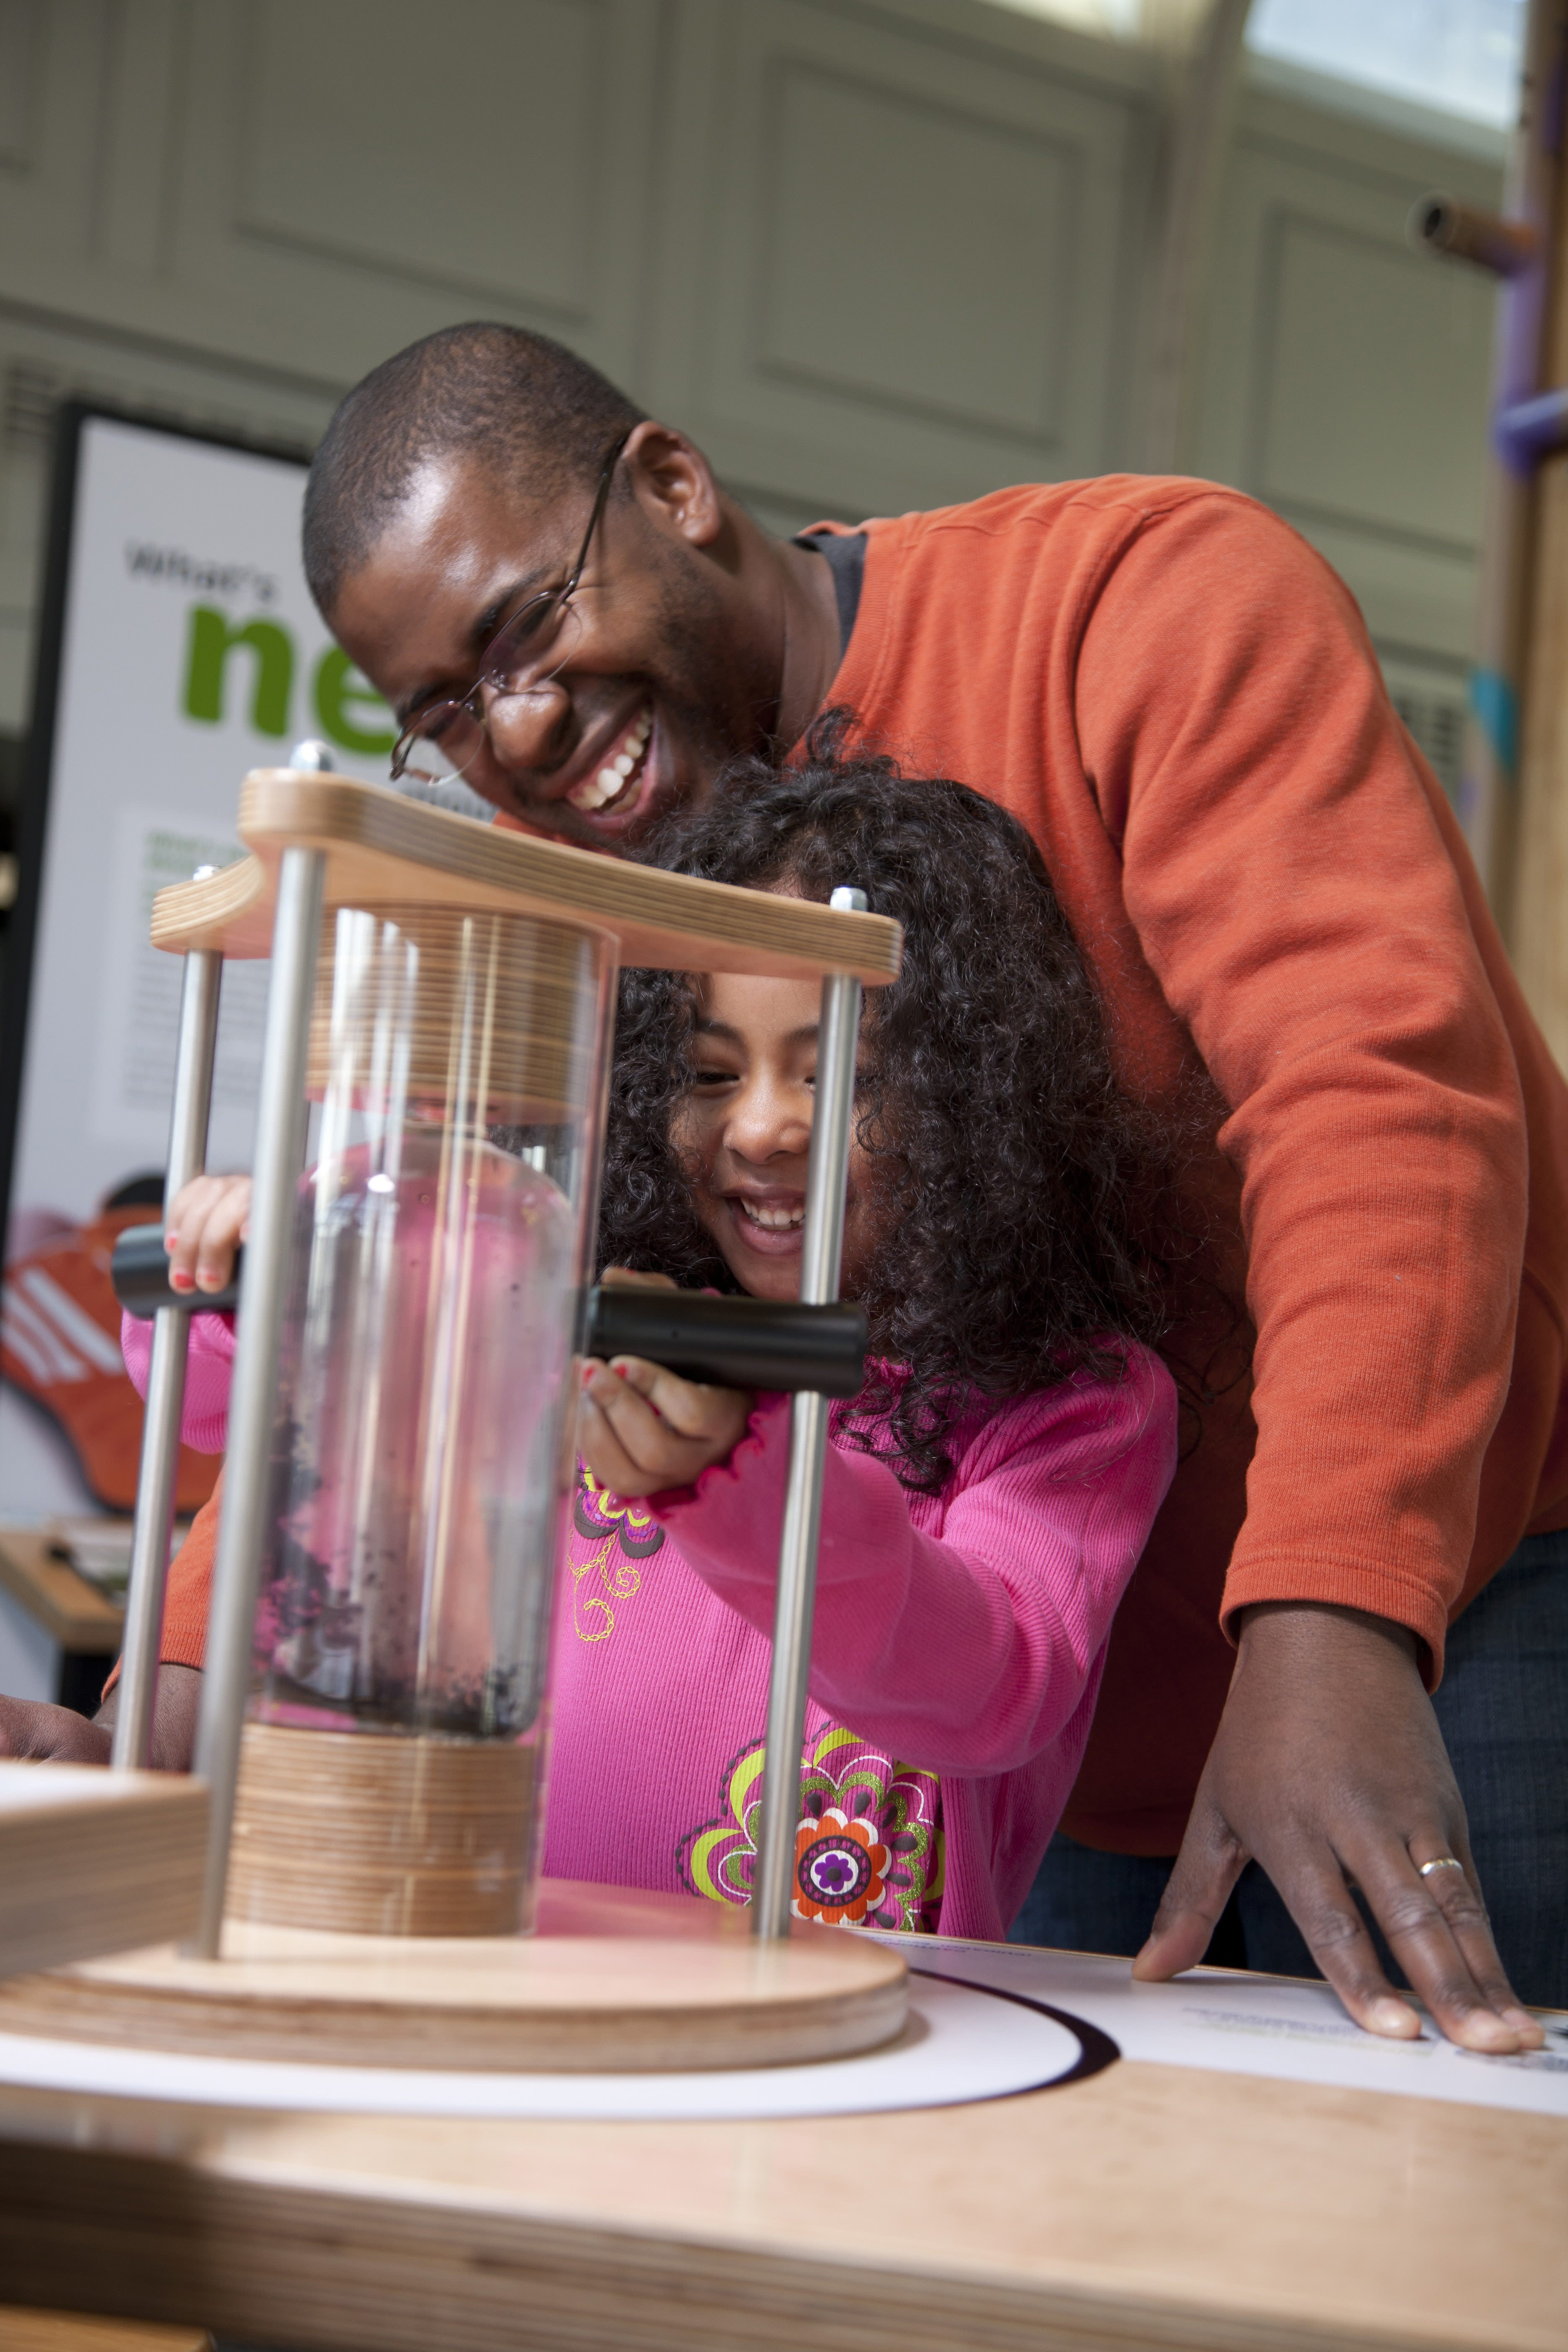 Explore Nano Technology at the Rochester Museum & Science Center